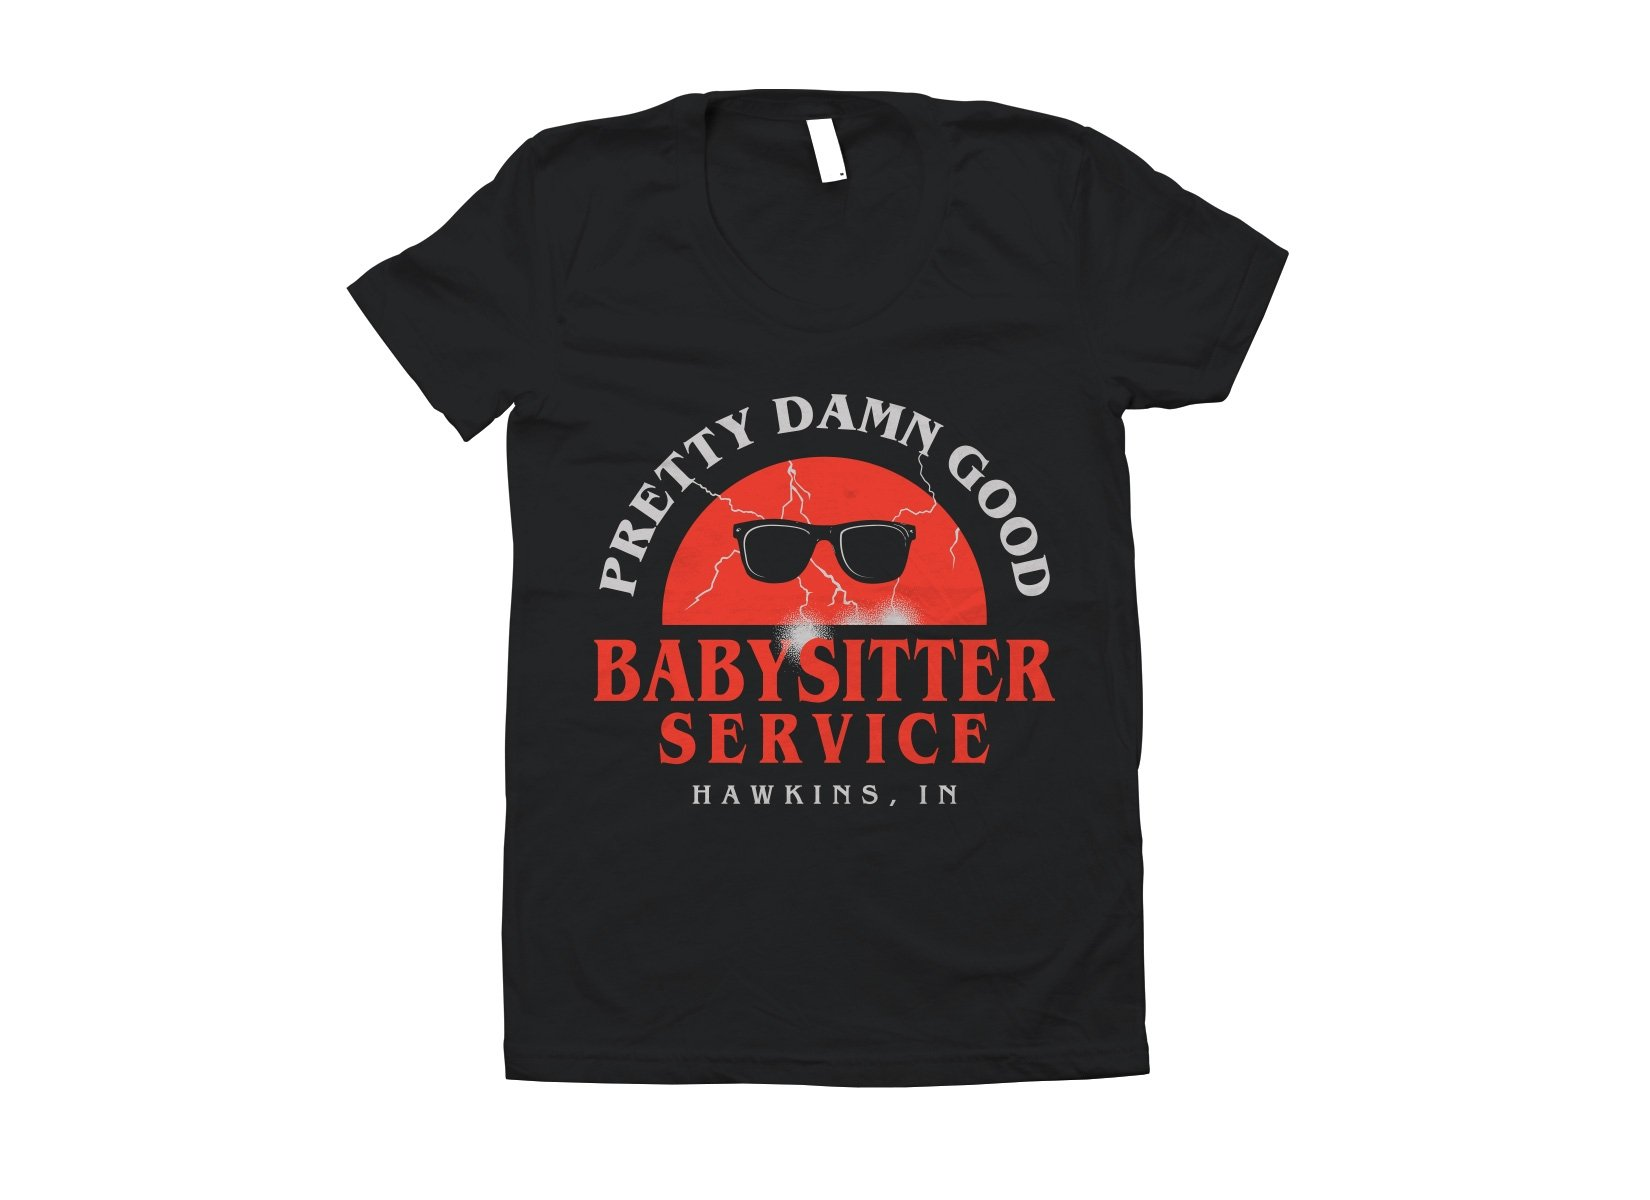 Pretty Damn Good Babysitter Service on Juniors T-Shirt